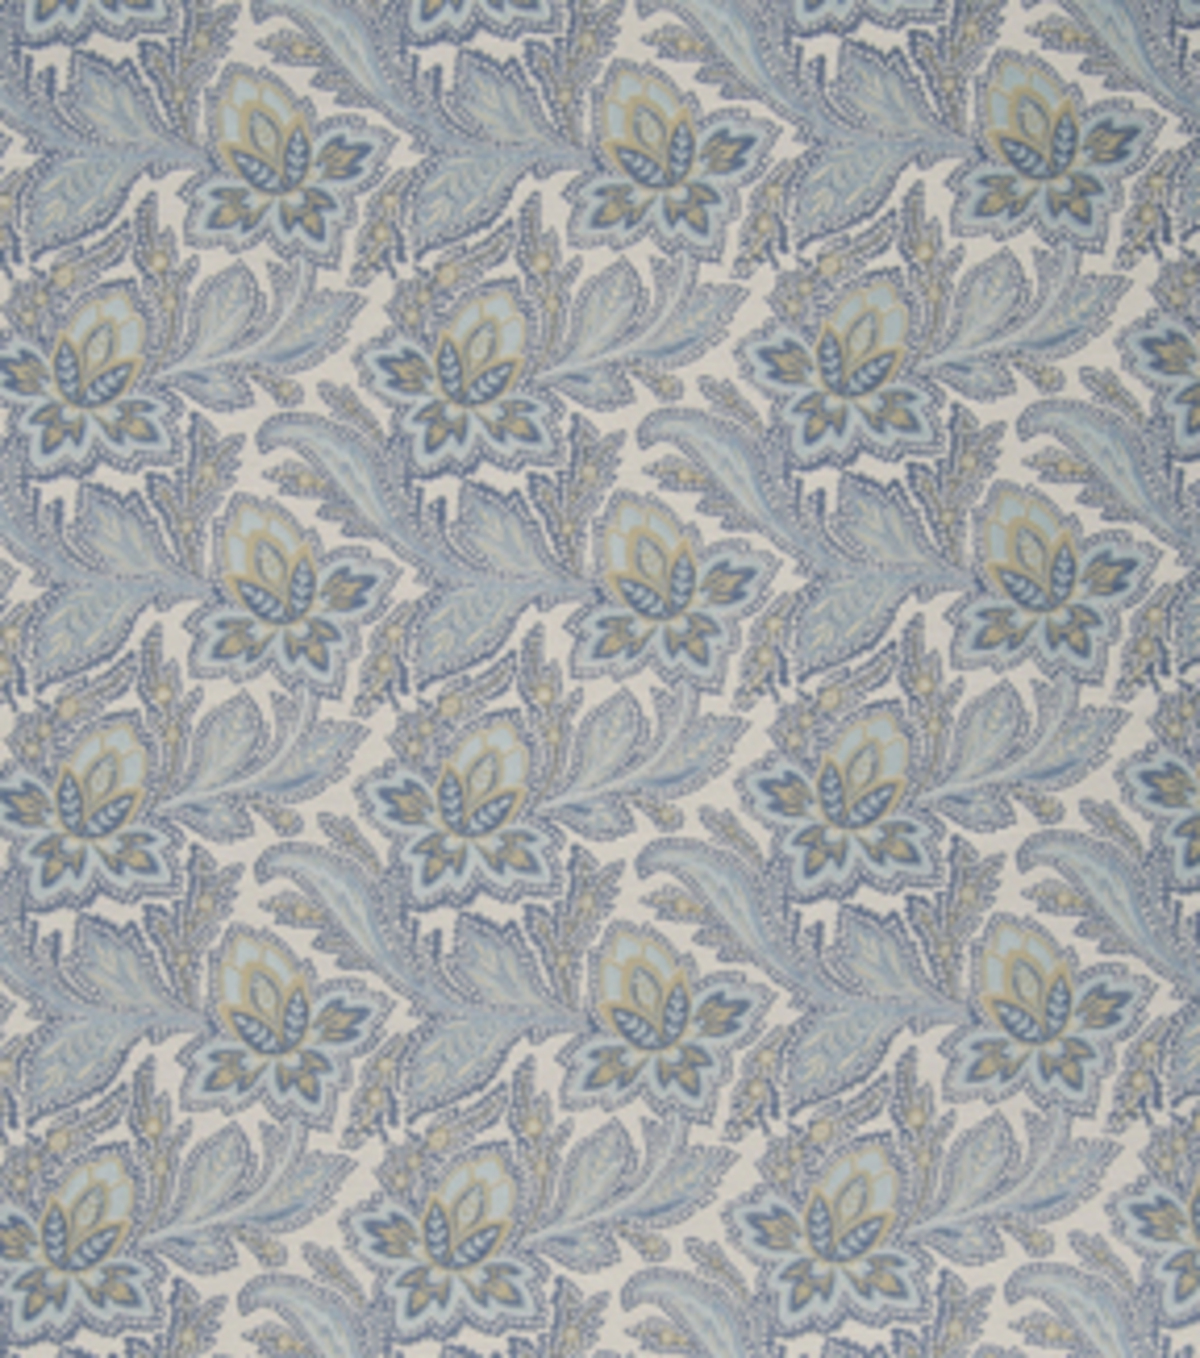 Home Decor 8\u0022x8\u0022 Fabric Swatch-French General General Bleu